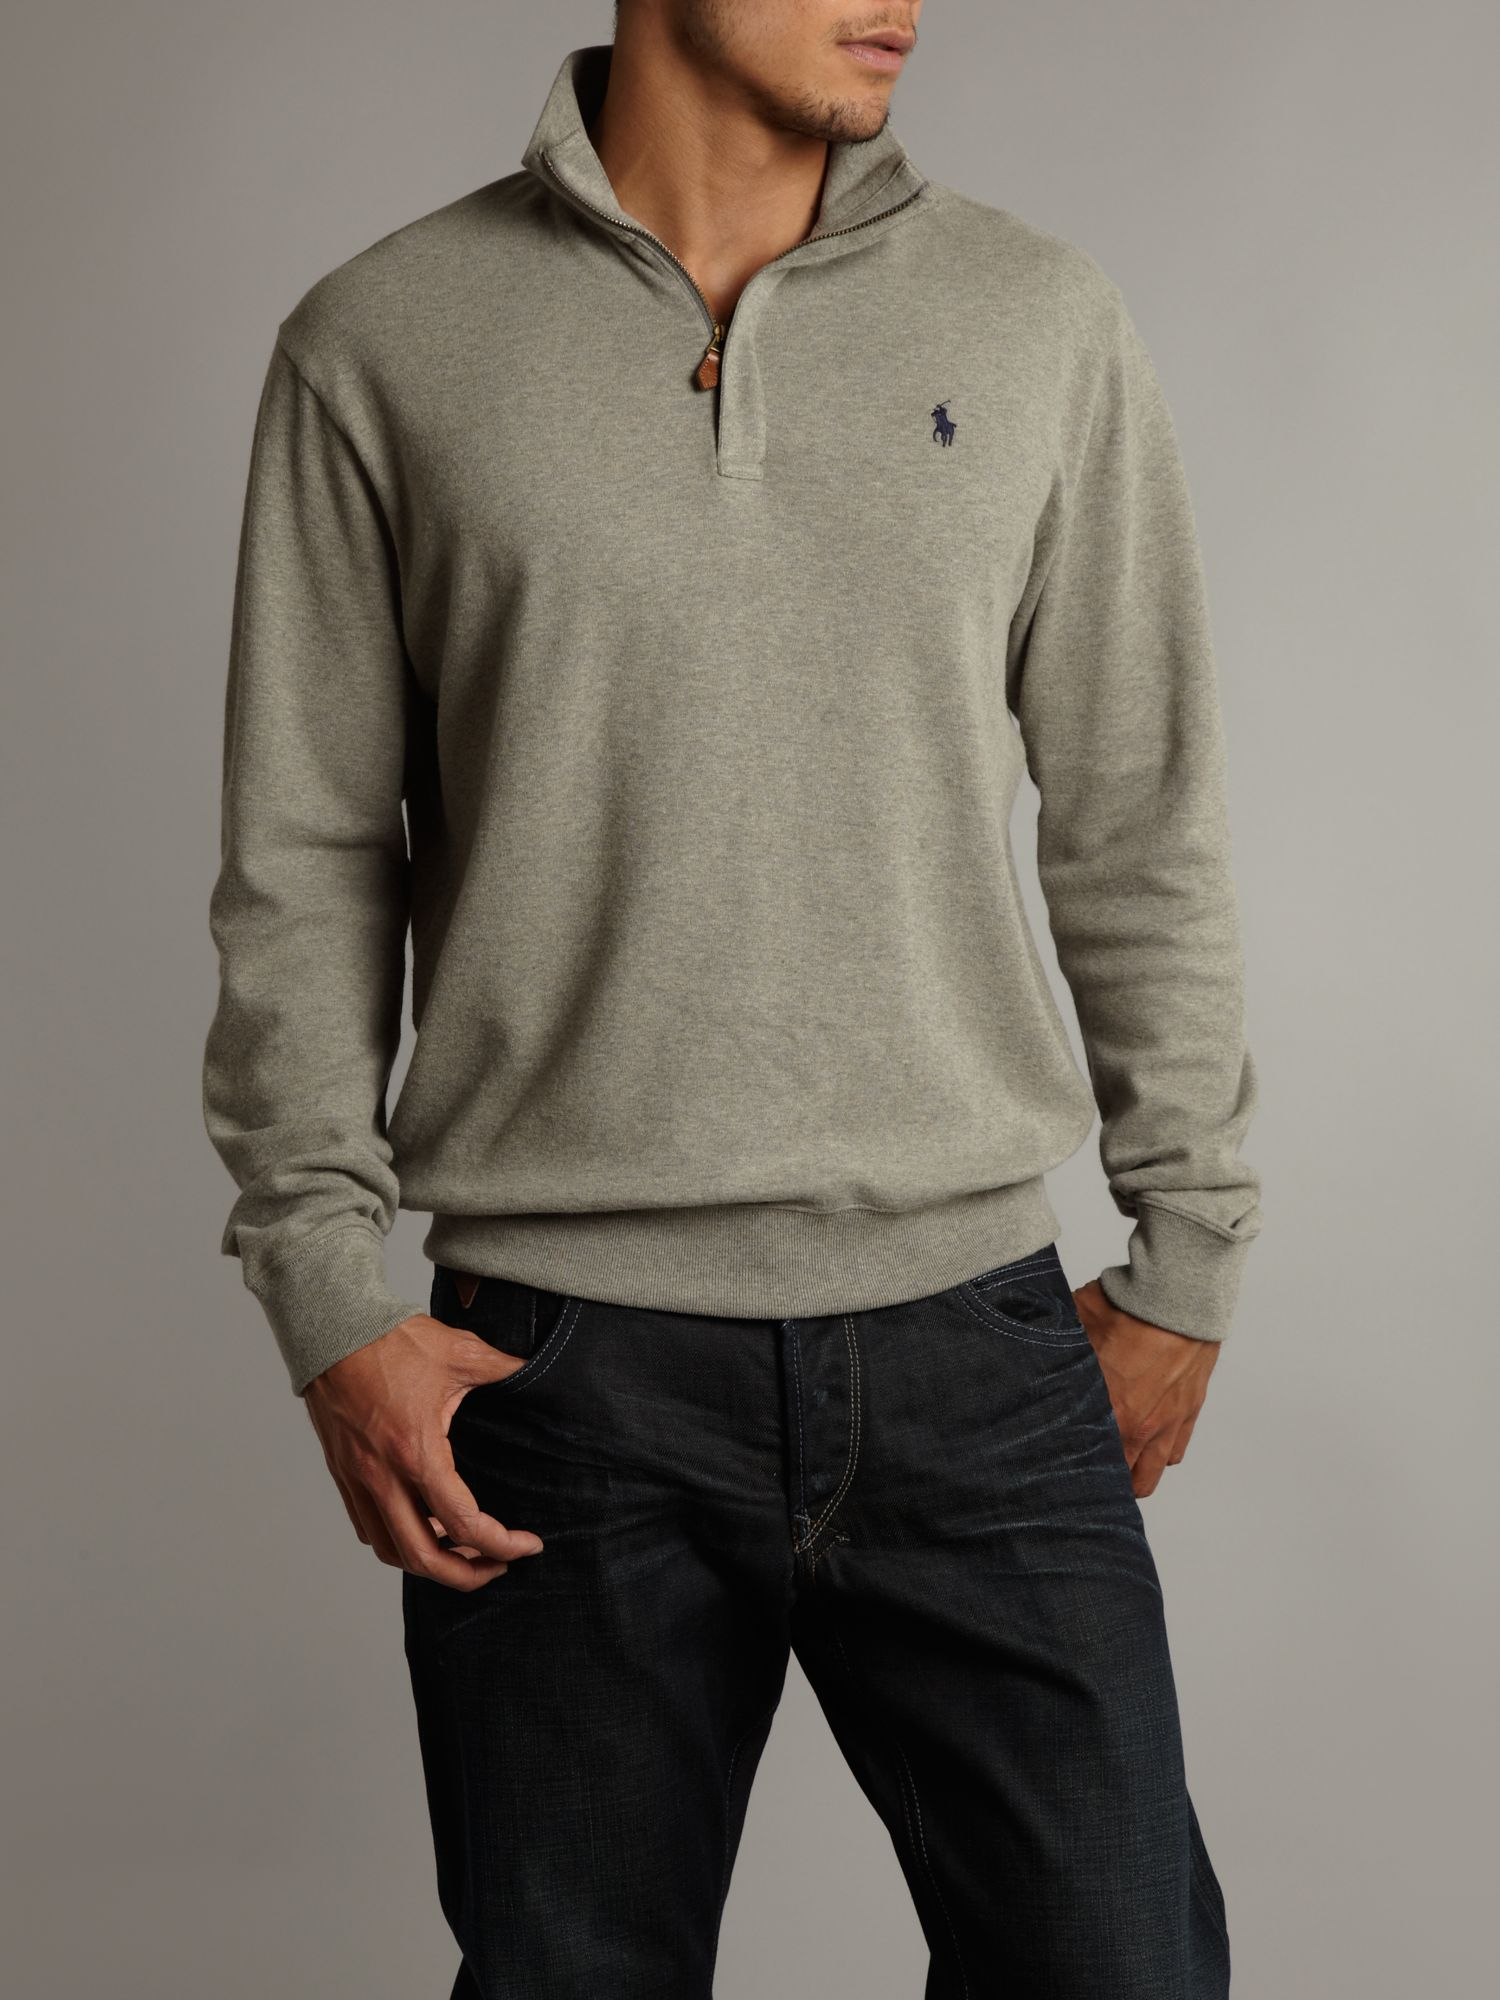 lyst ralph lauren golf half zip sweatshirt in gray for men. Black Bedroom Furniture Sets. Home Design Ideas